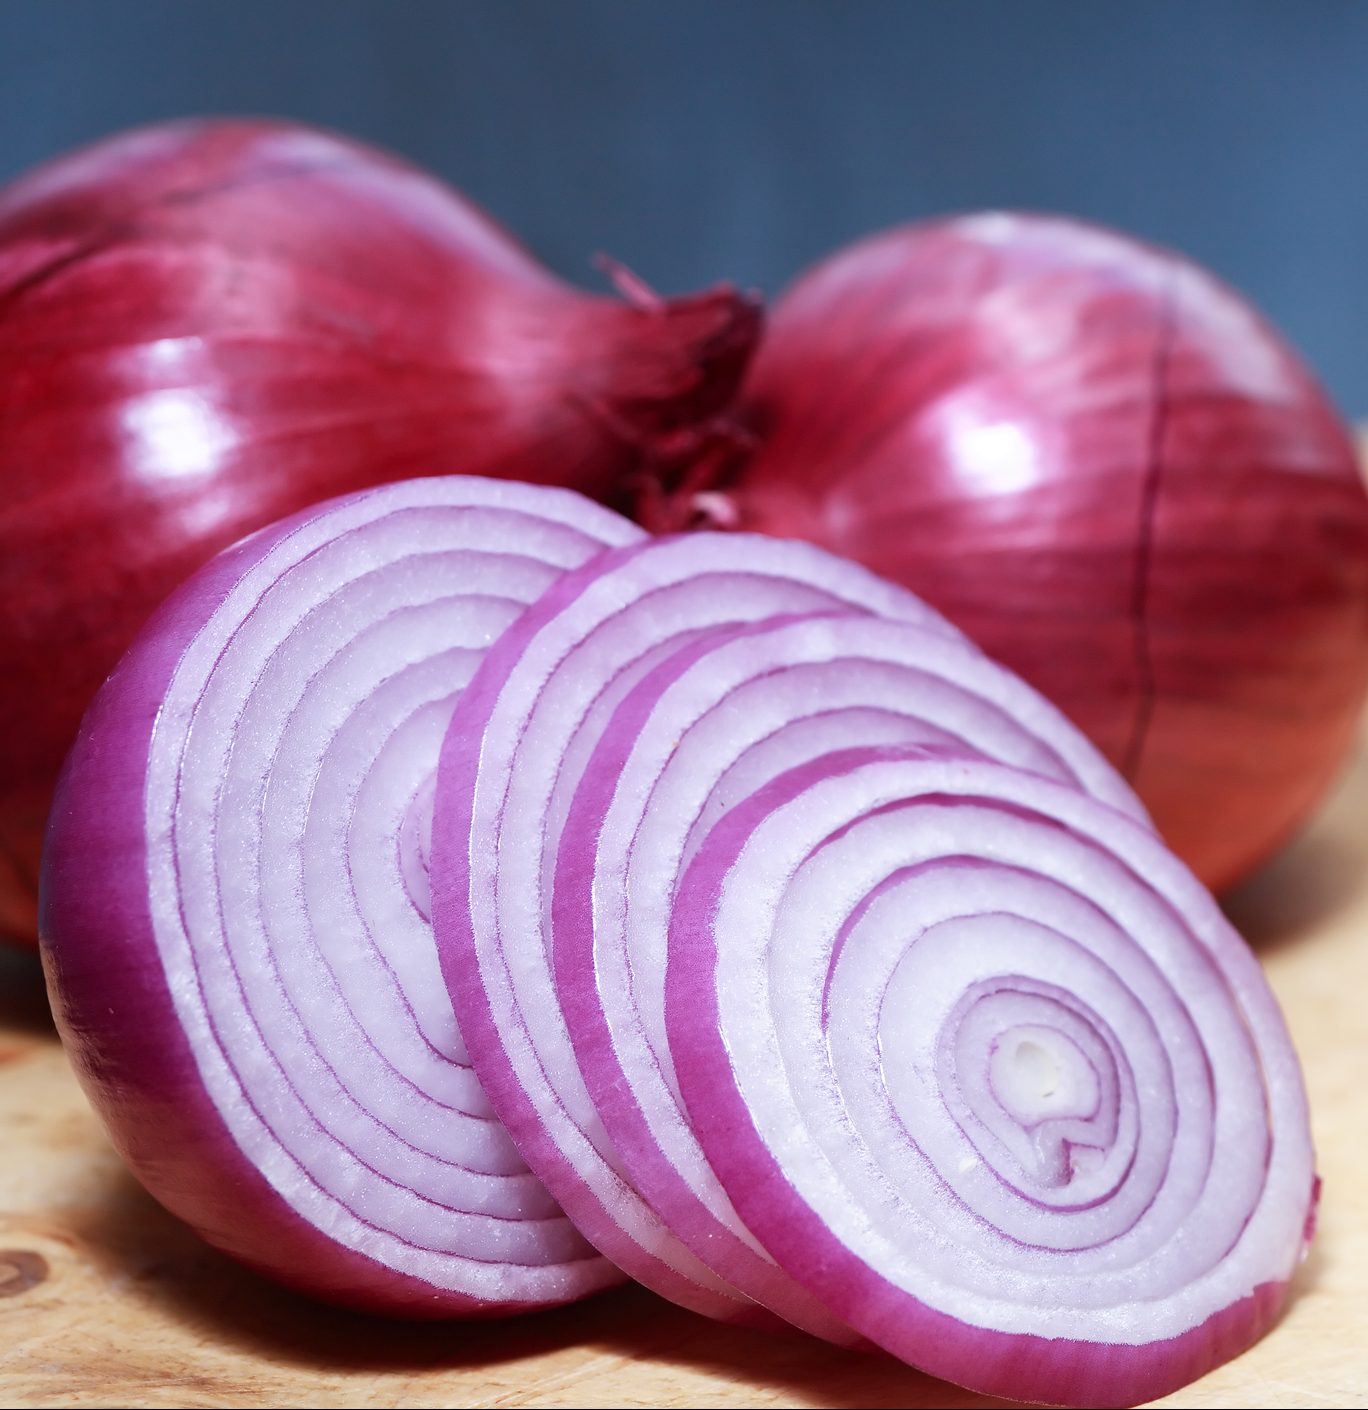 how to kill rats with red onion